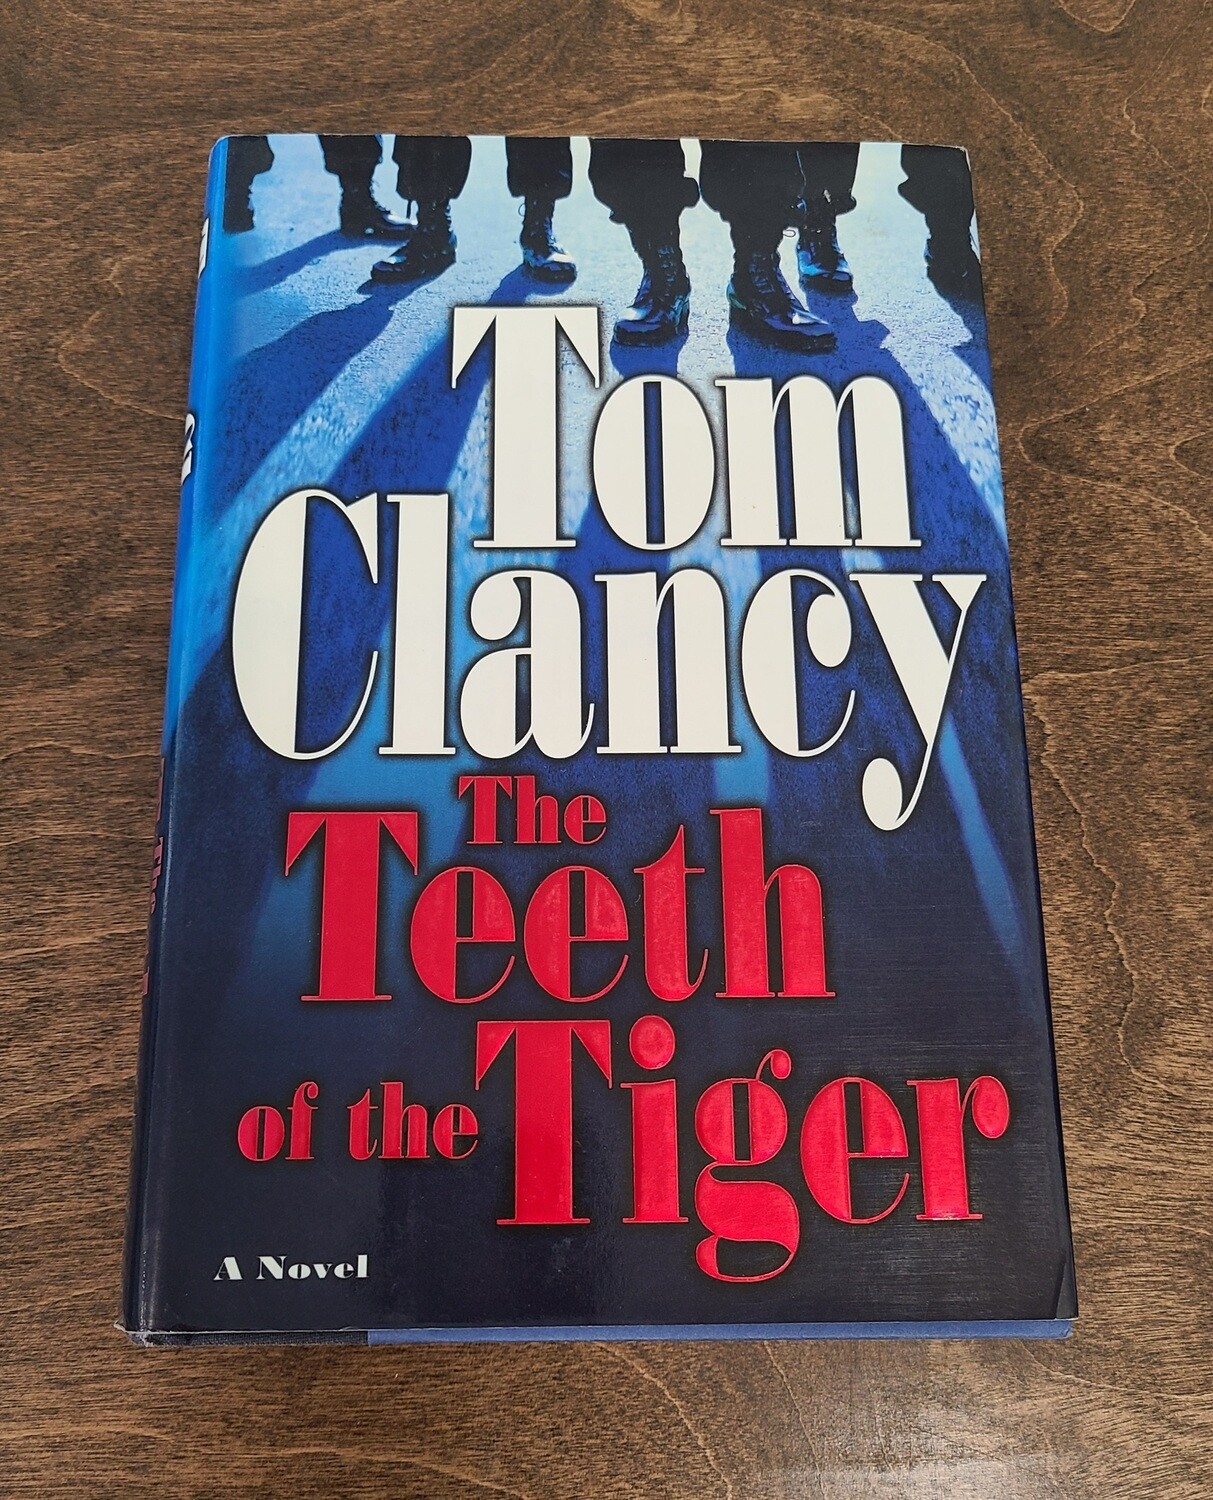 The Teeth of the Tiger by Tom Clancy - Hardback